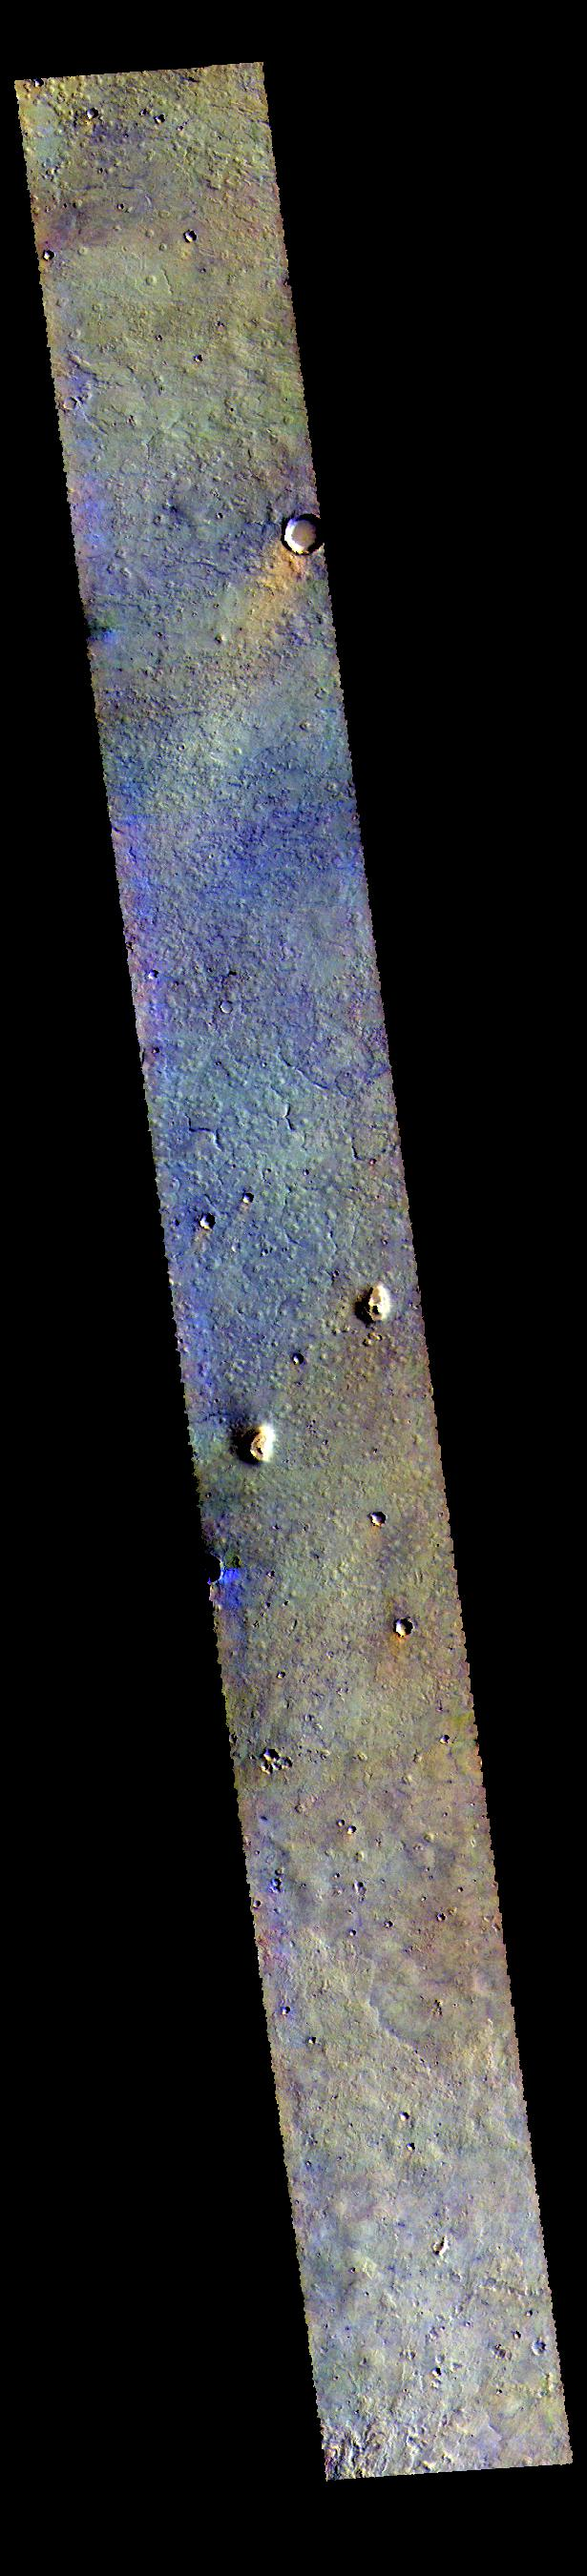 This image from NASAs Mars Odyssey shows the plains between Chryse and Acidalia Planitias. Dark blue tones in this false color combination are usually created by basaltic sands.